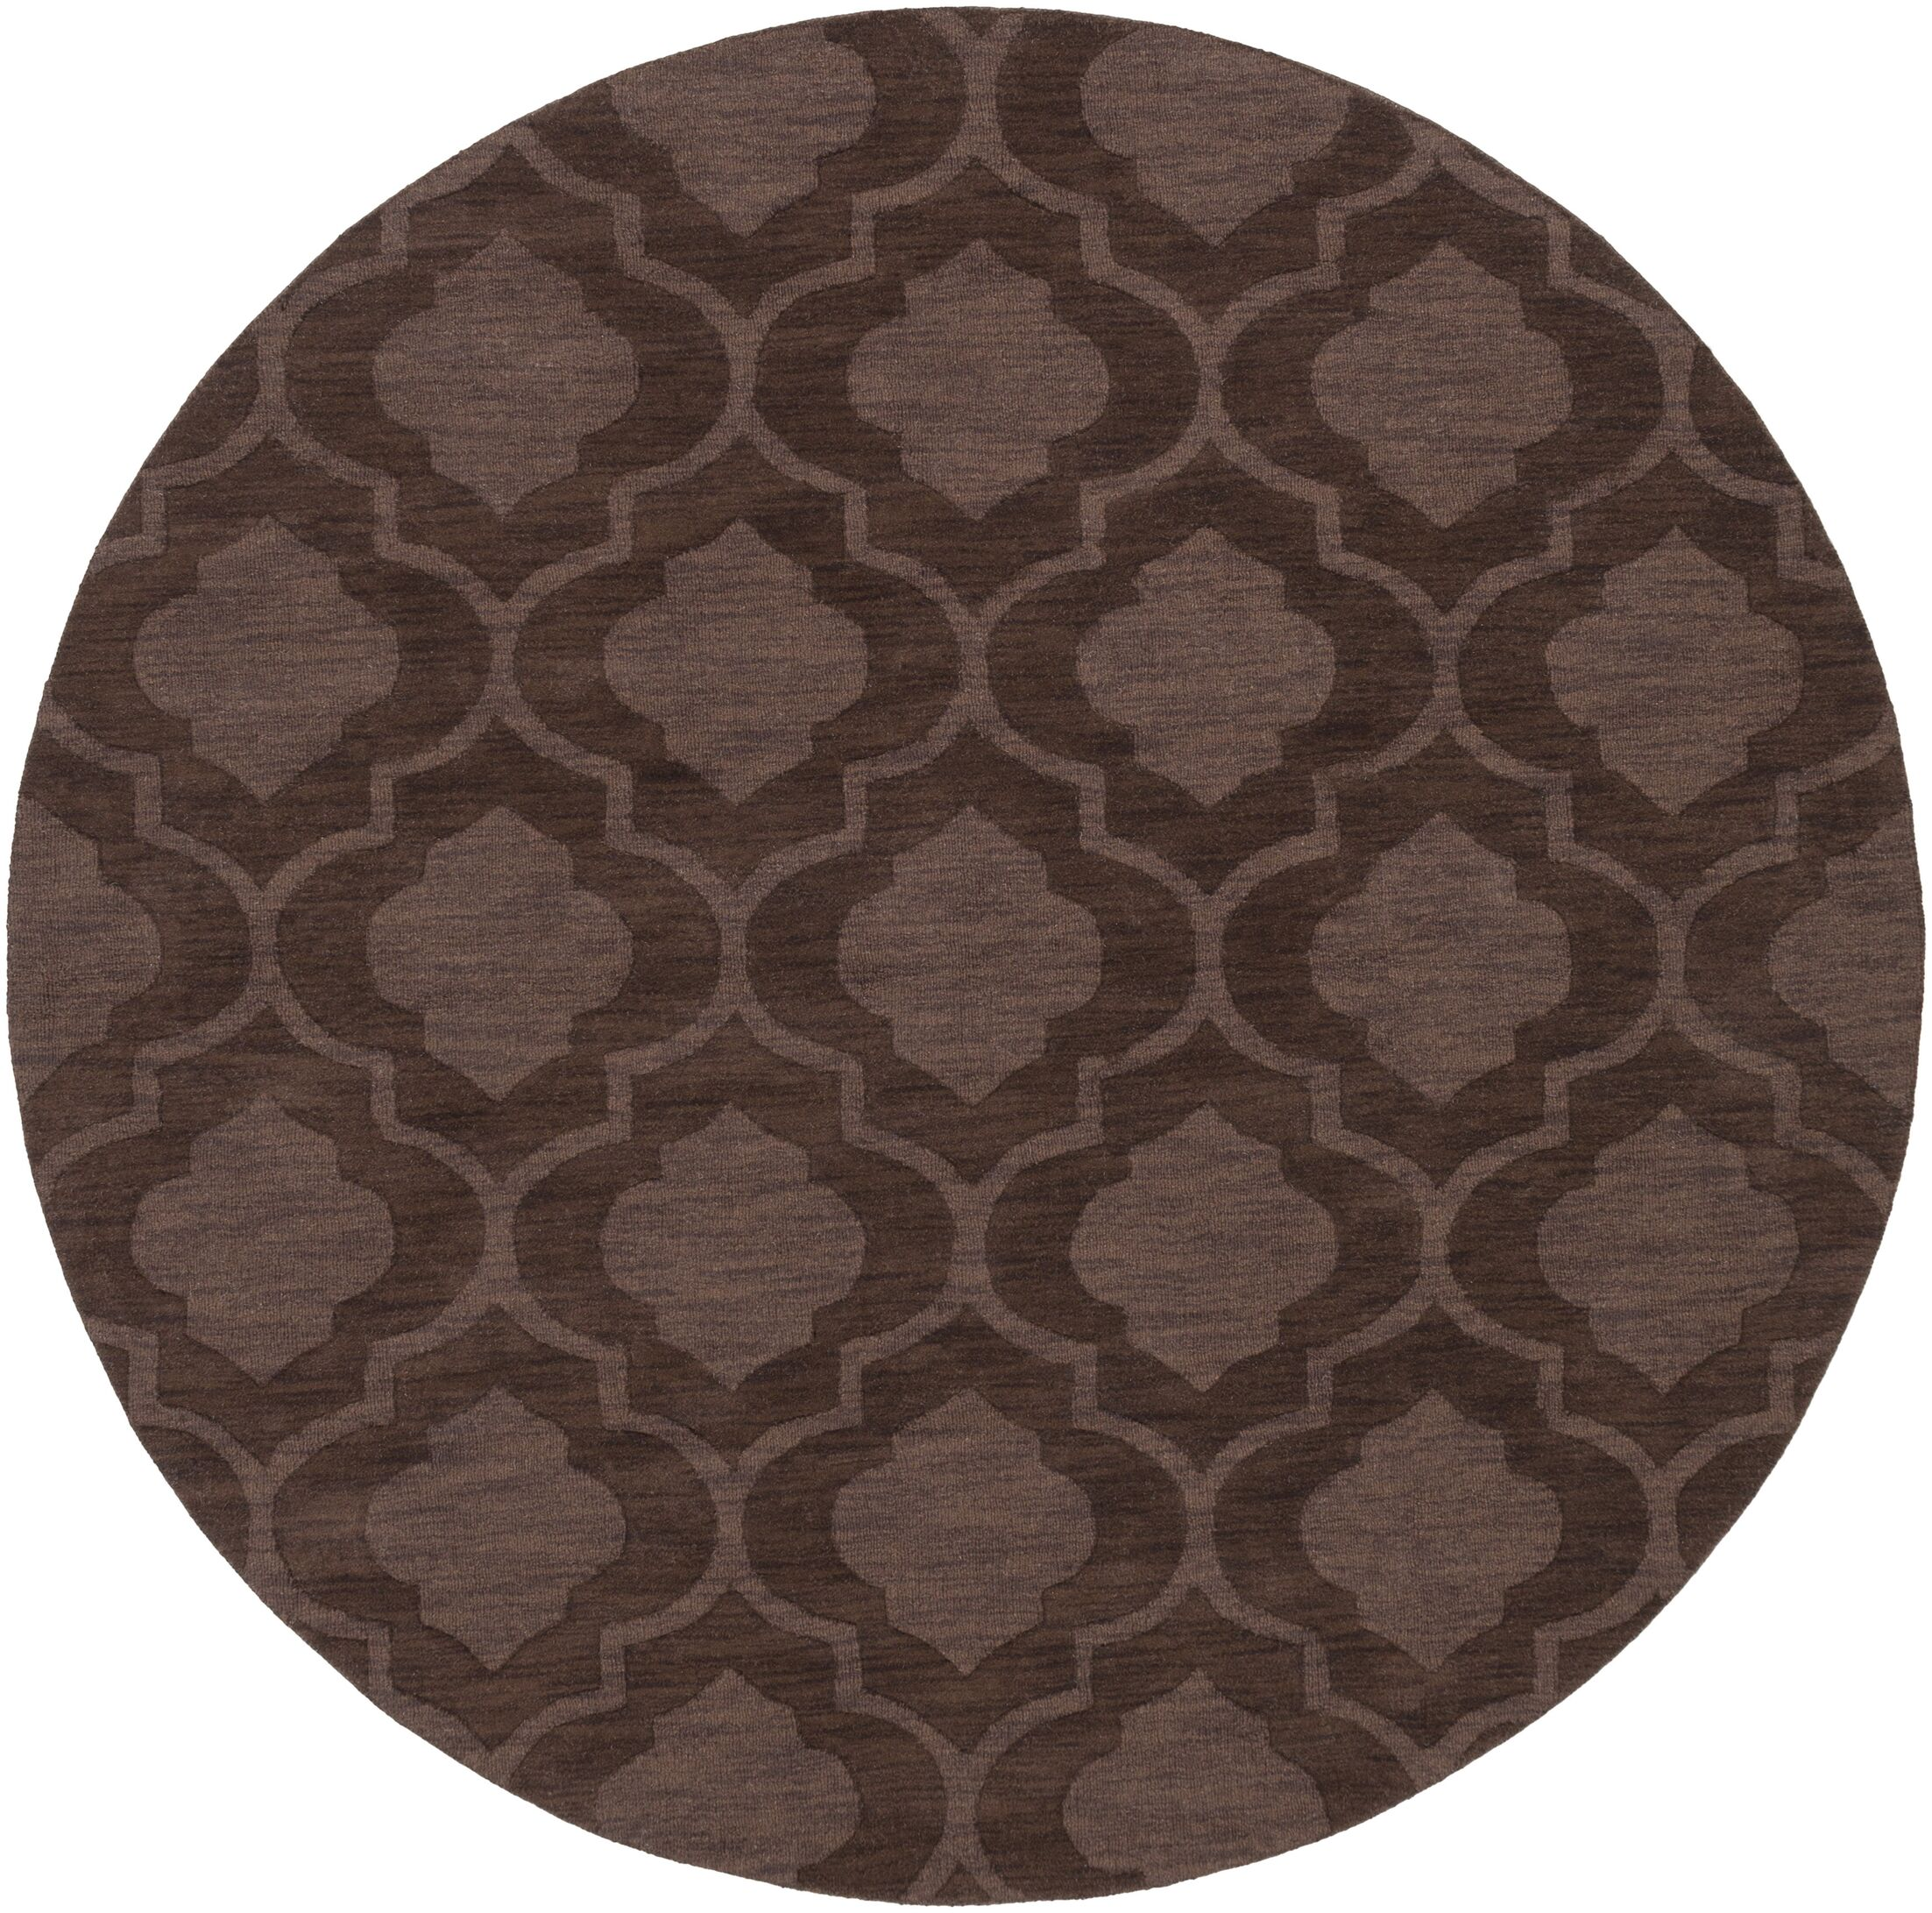 Castro Brown Geometric Kate Area Rug Rug Size: Round 9'9